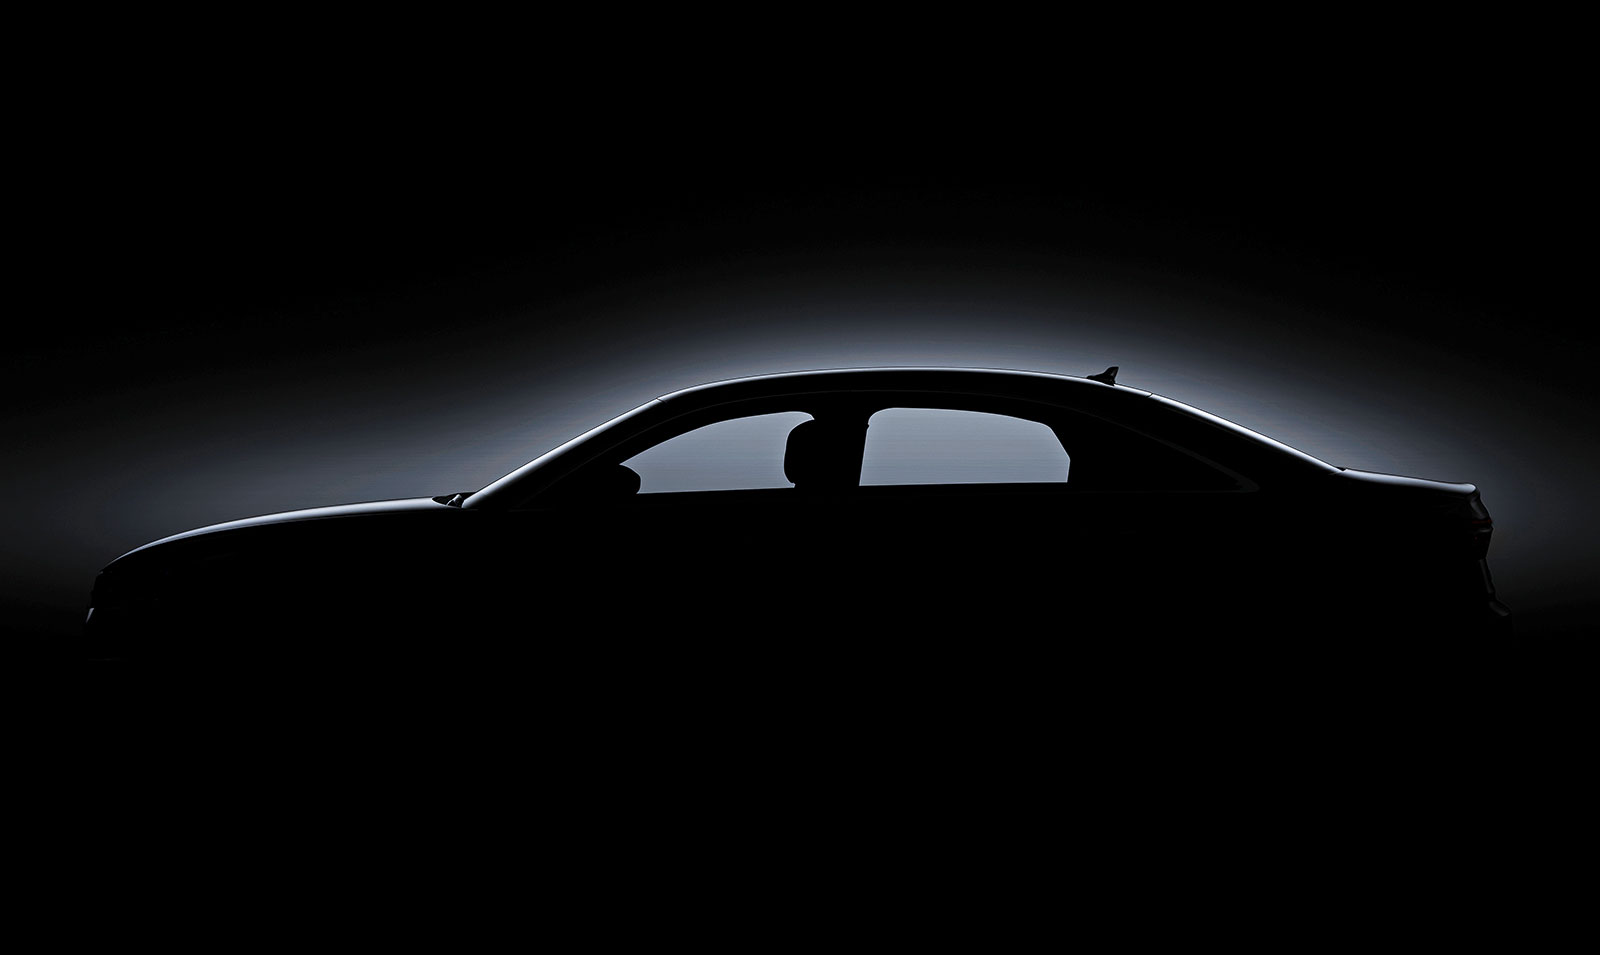 Audi Teases Selfparking A Ahead Of Launch - Audi car that parks itself